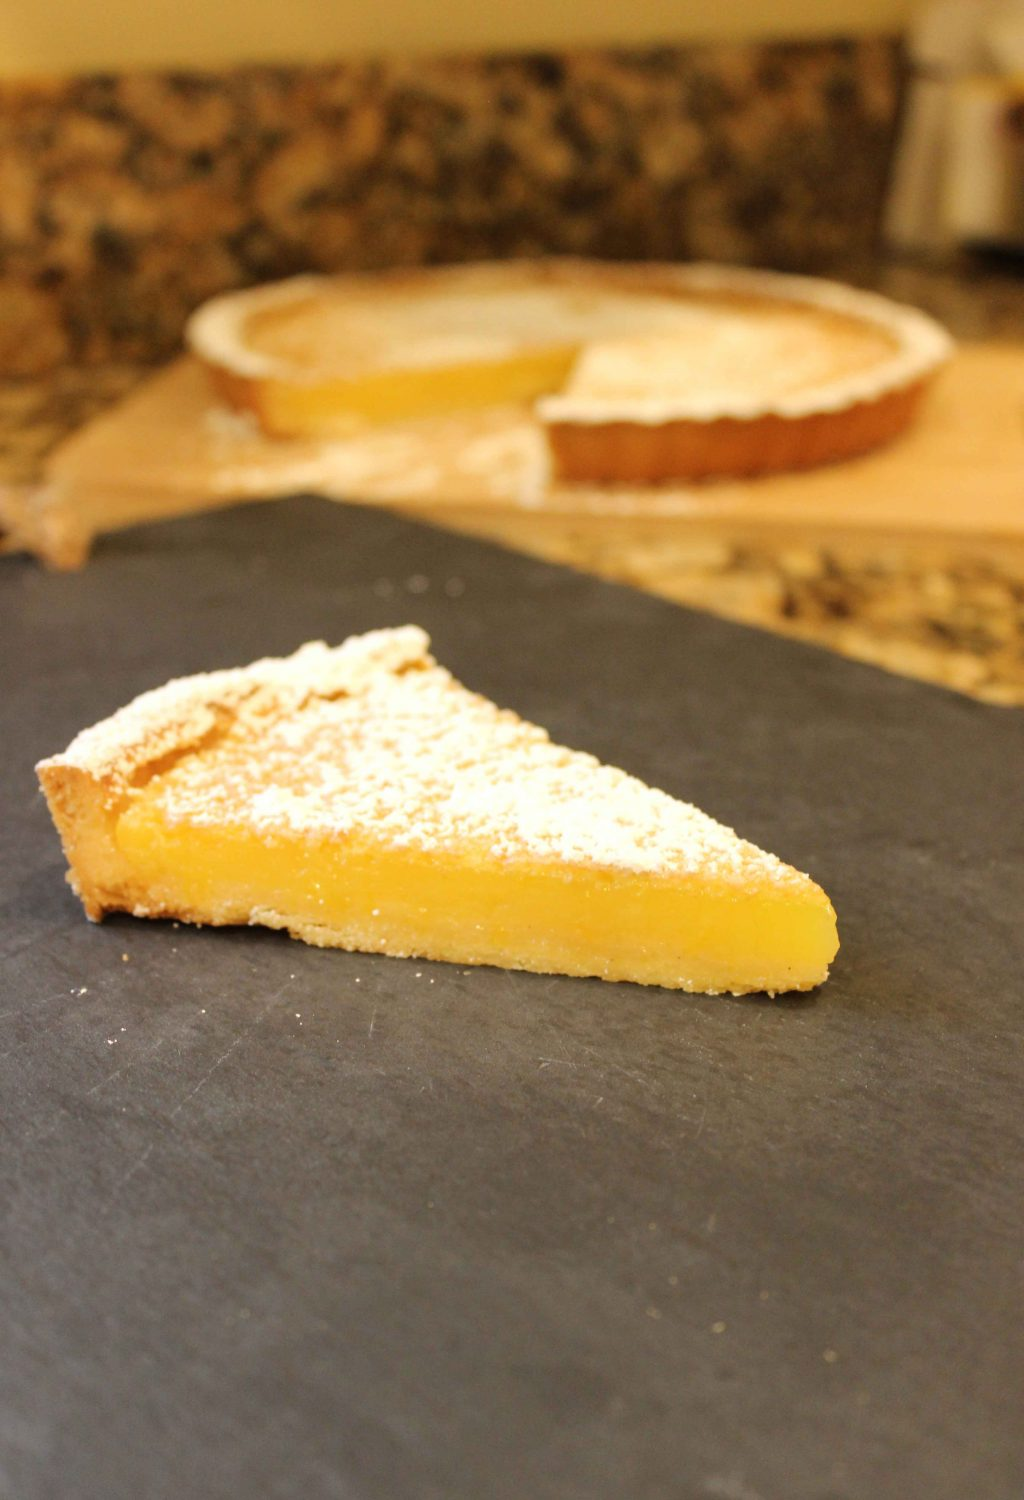 Photo of Lemon Tart by Scone Rollin' Petaluma